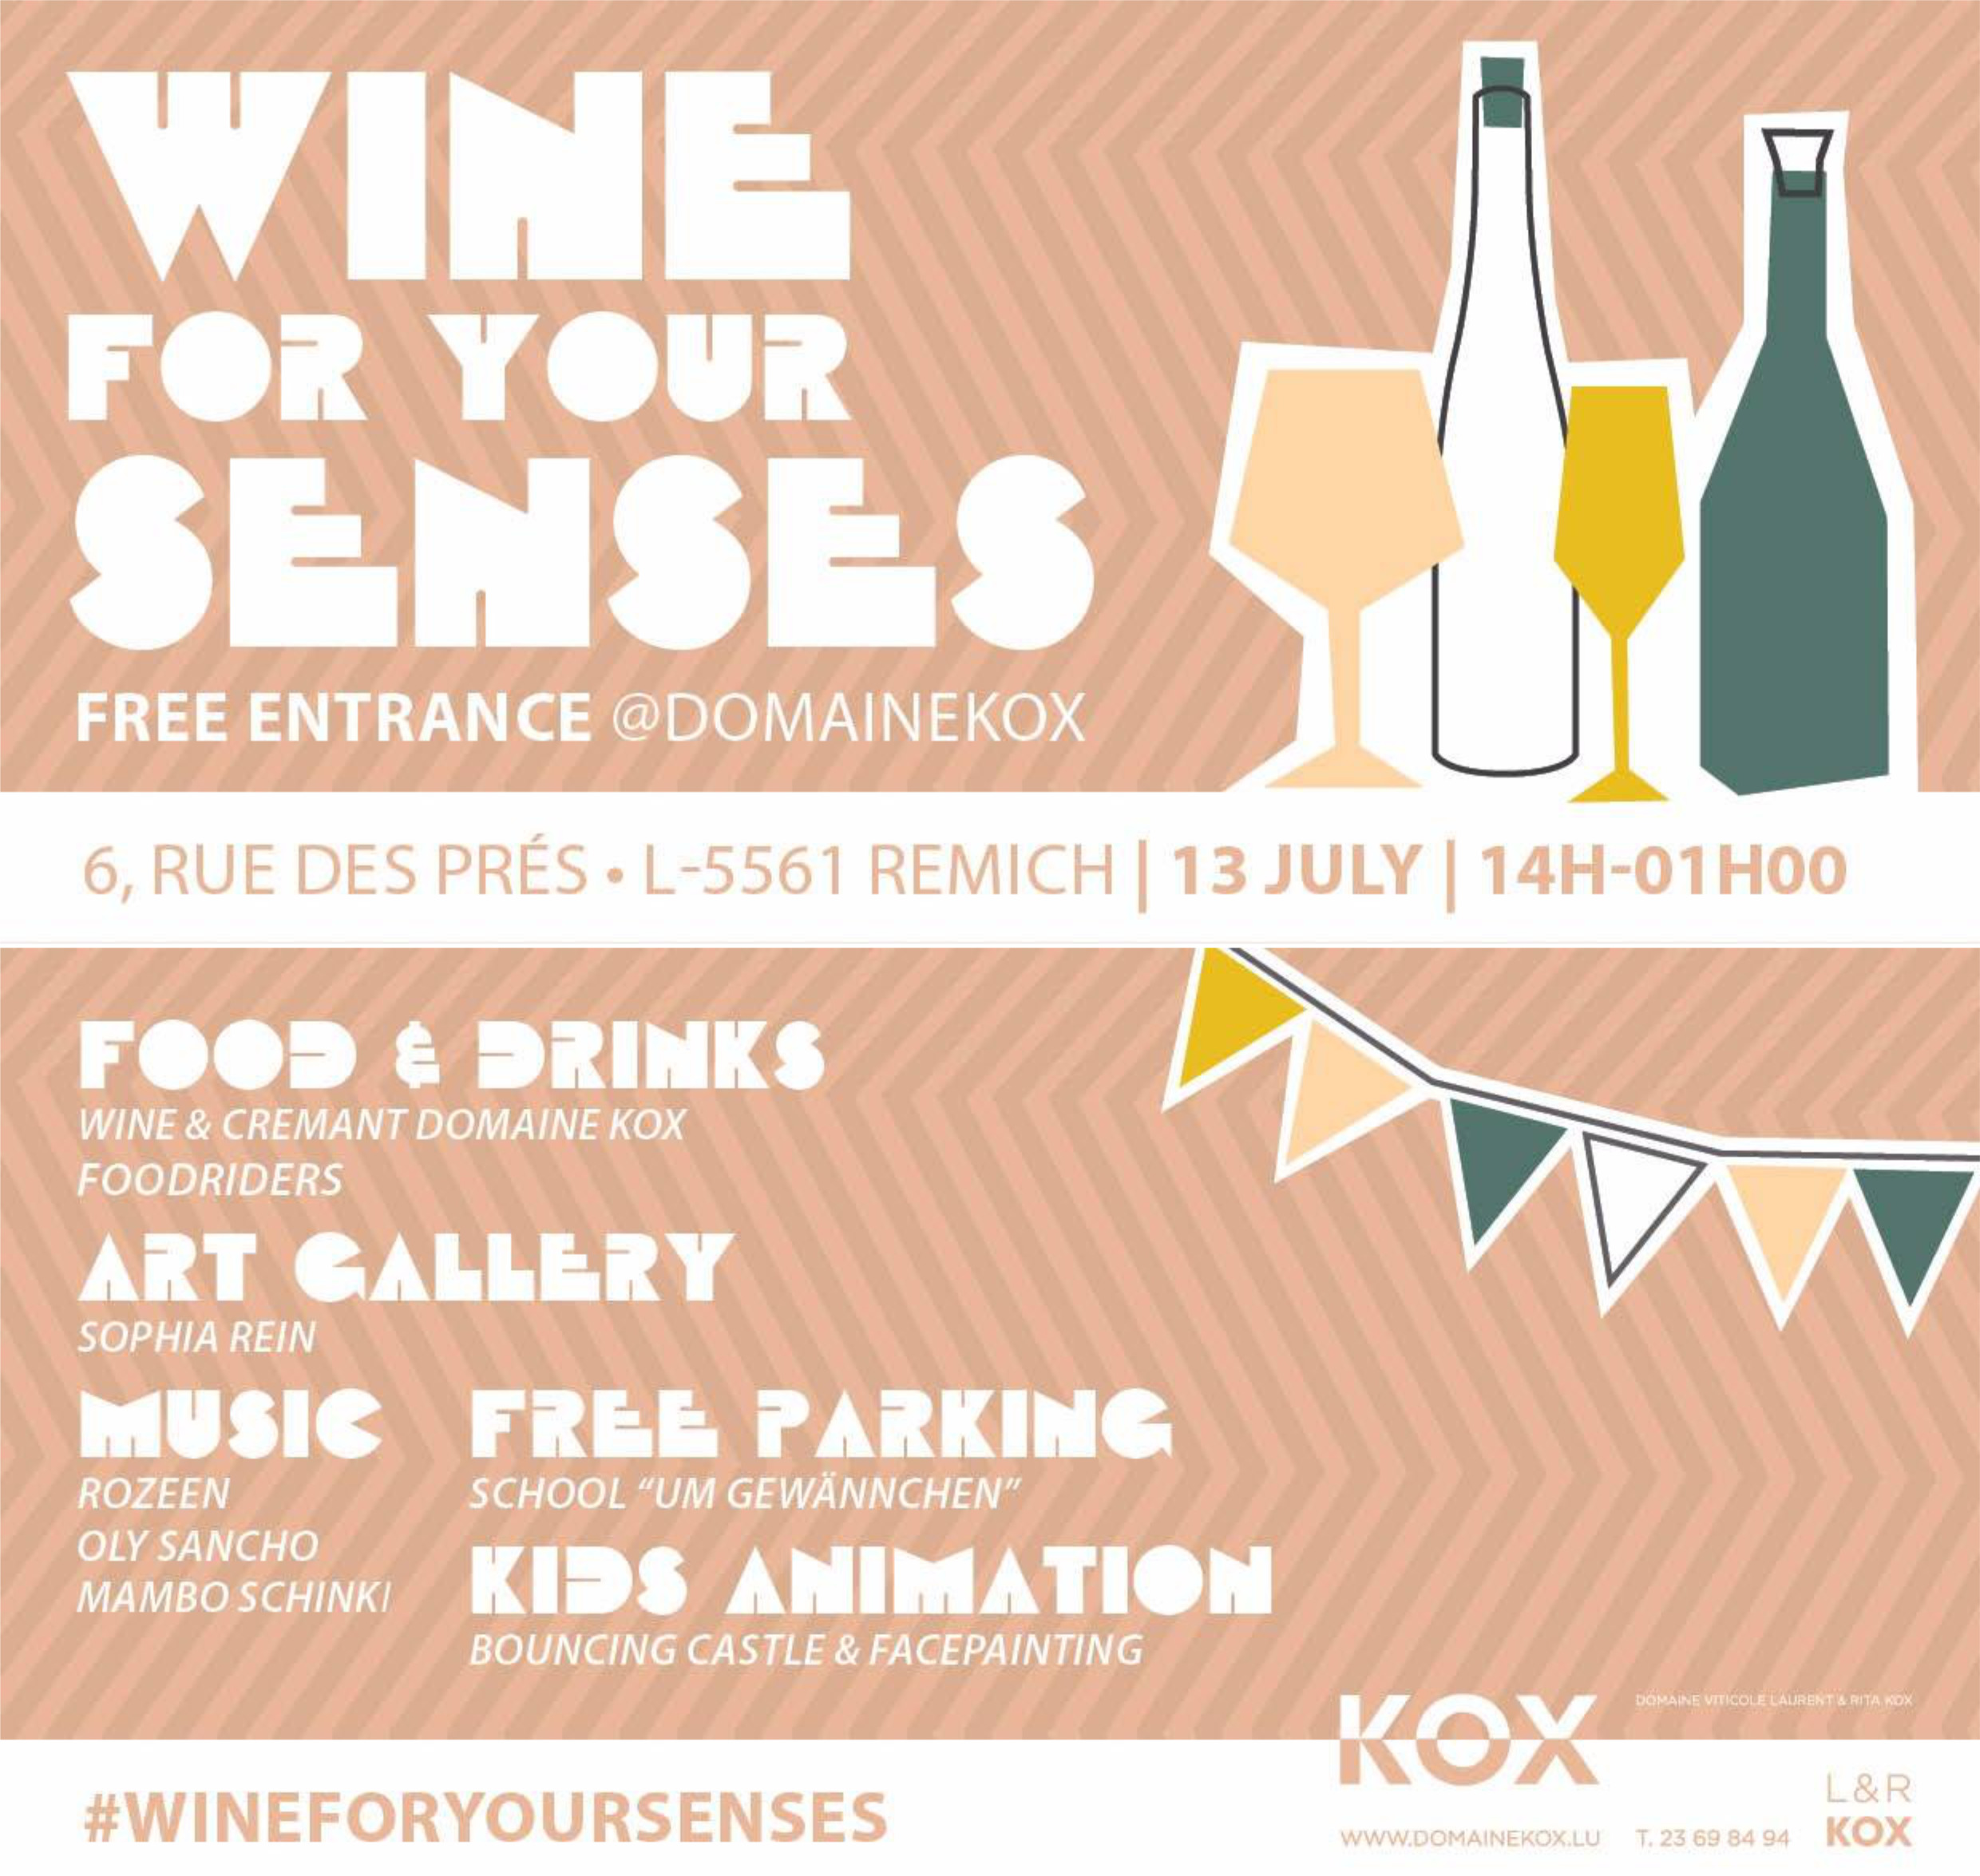 13.07.2019 WINE FOR YOUR SENSES